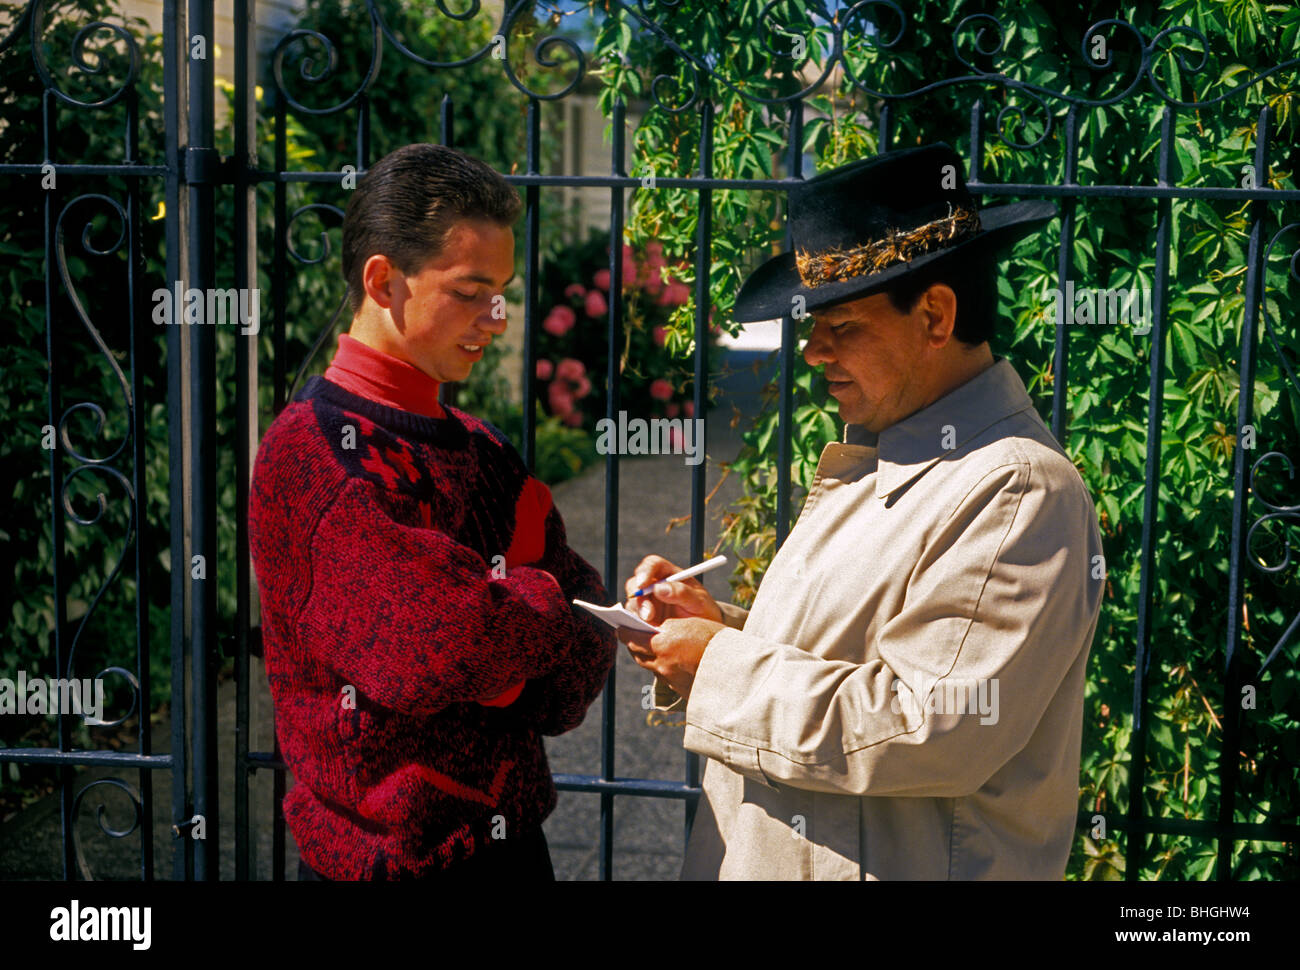 Guatemalan-Americans, father and son, Novato, California, United States, North America - Stock Image